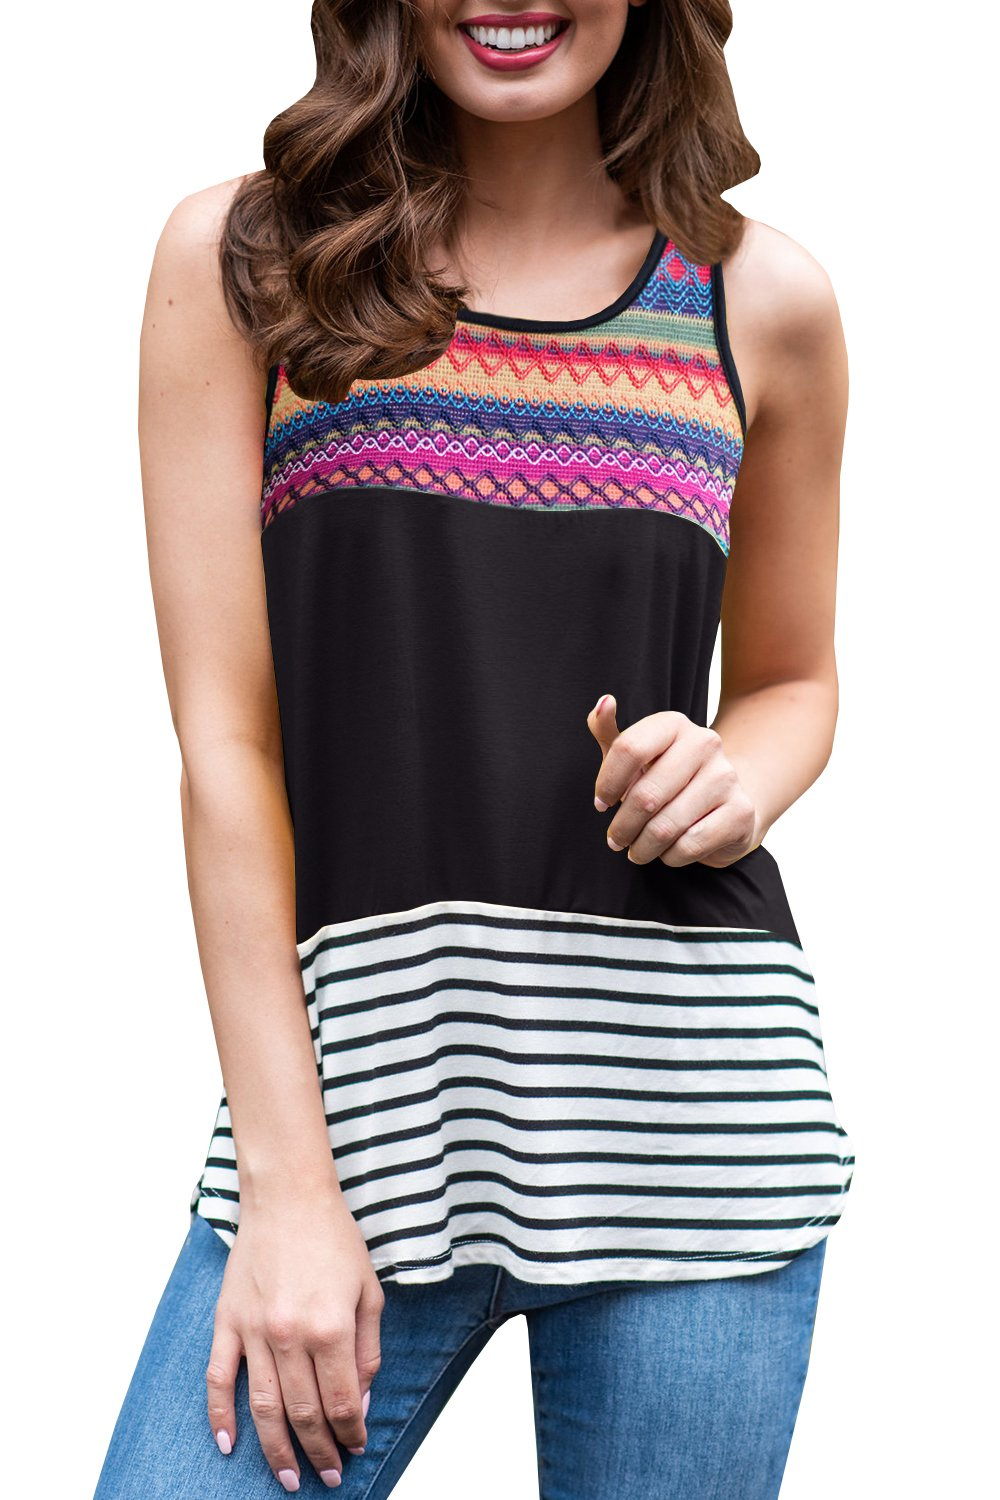 Womens Tank Tops Summer Casual Colorblock Striped Sleeveless Shirts Long Blouses